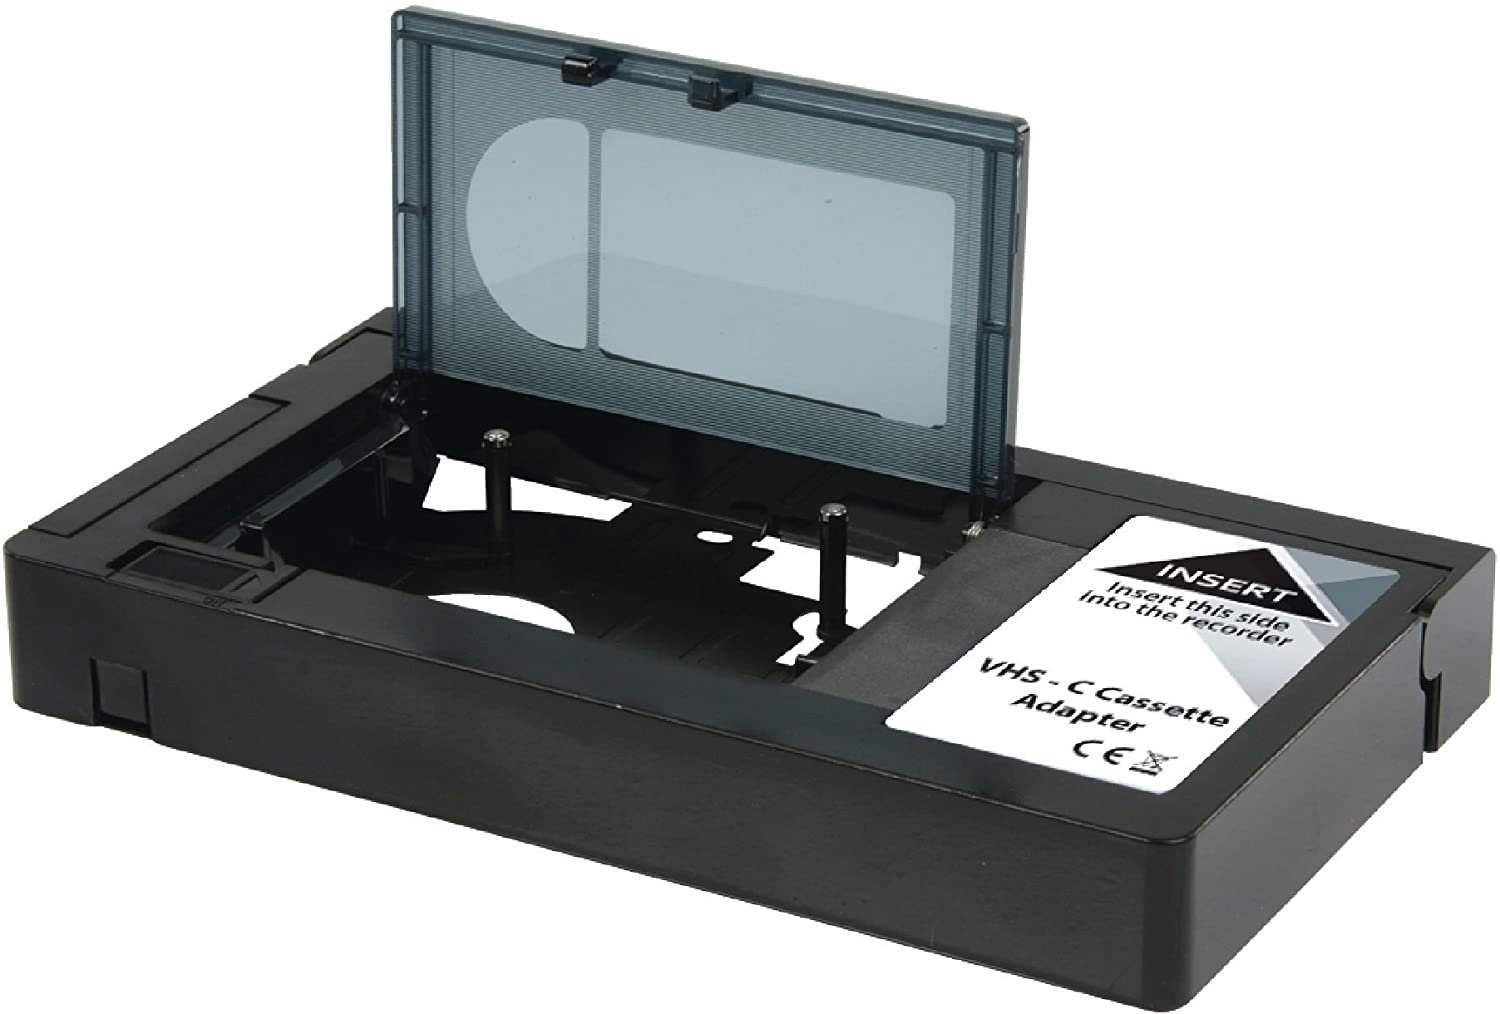 Amazon Com Konig Vhs C Cassette Adapter Kn Vhs C Adapt Not Compatible With 8mm Minidv Camera Photo